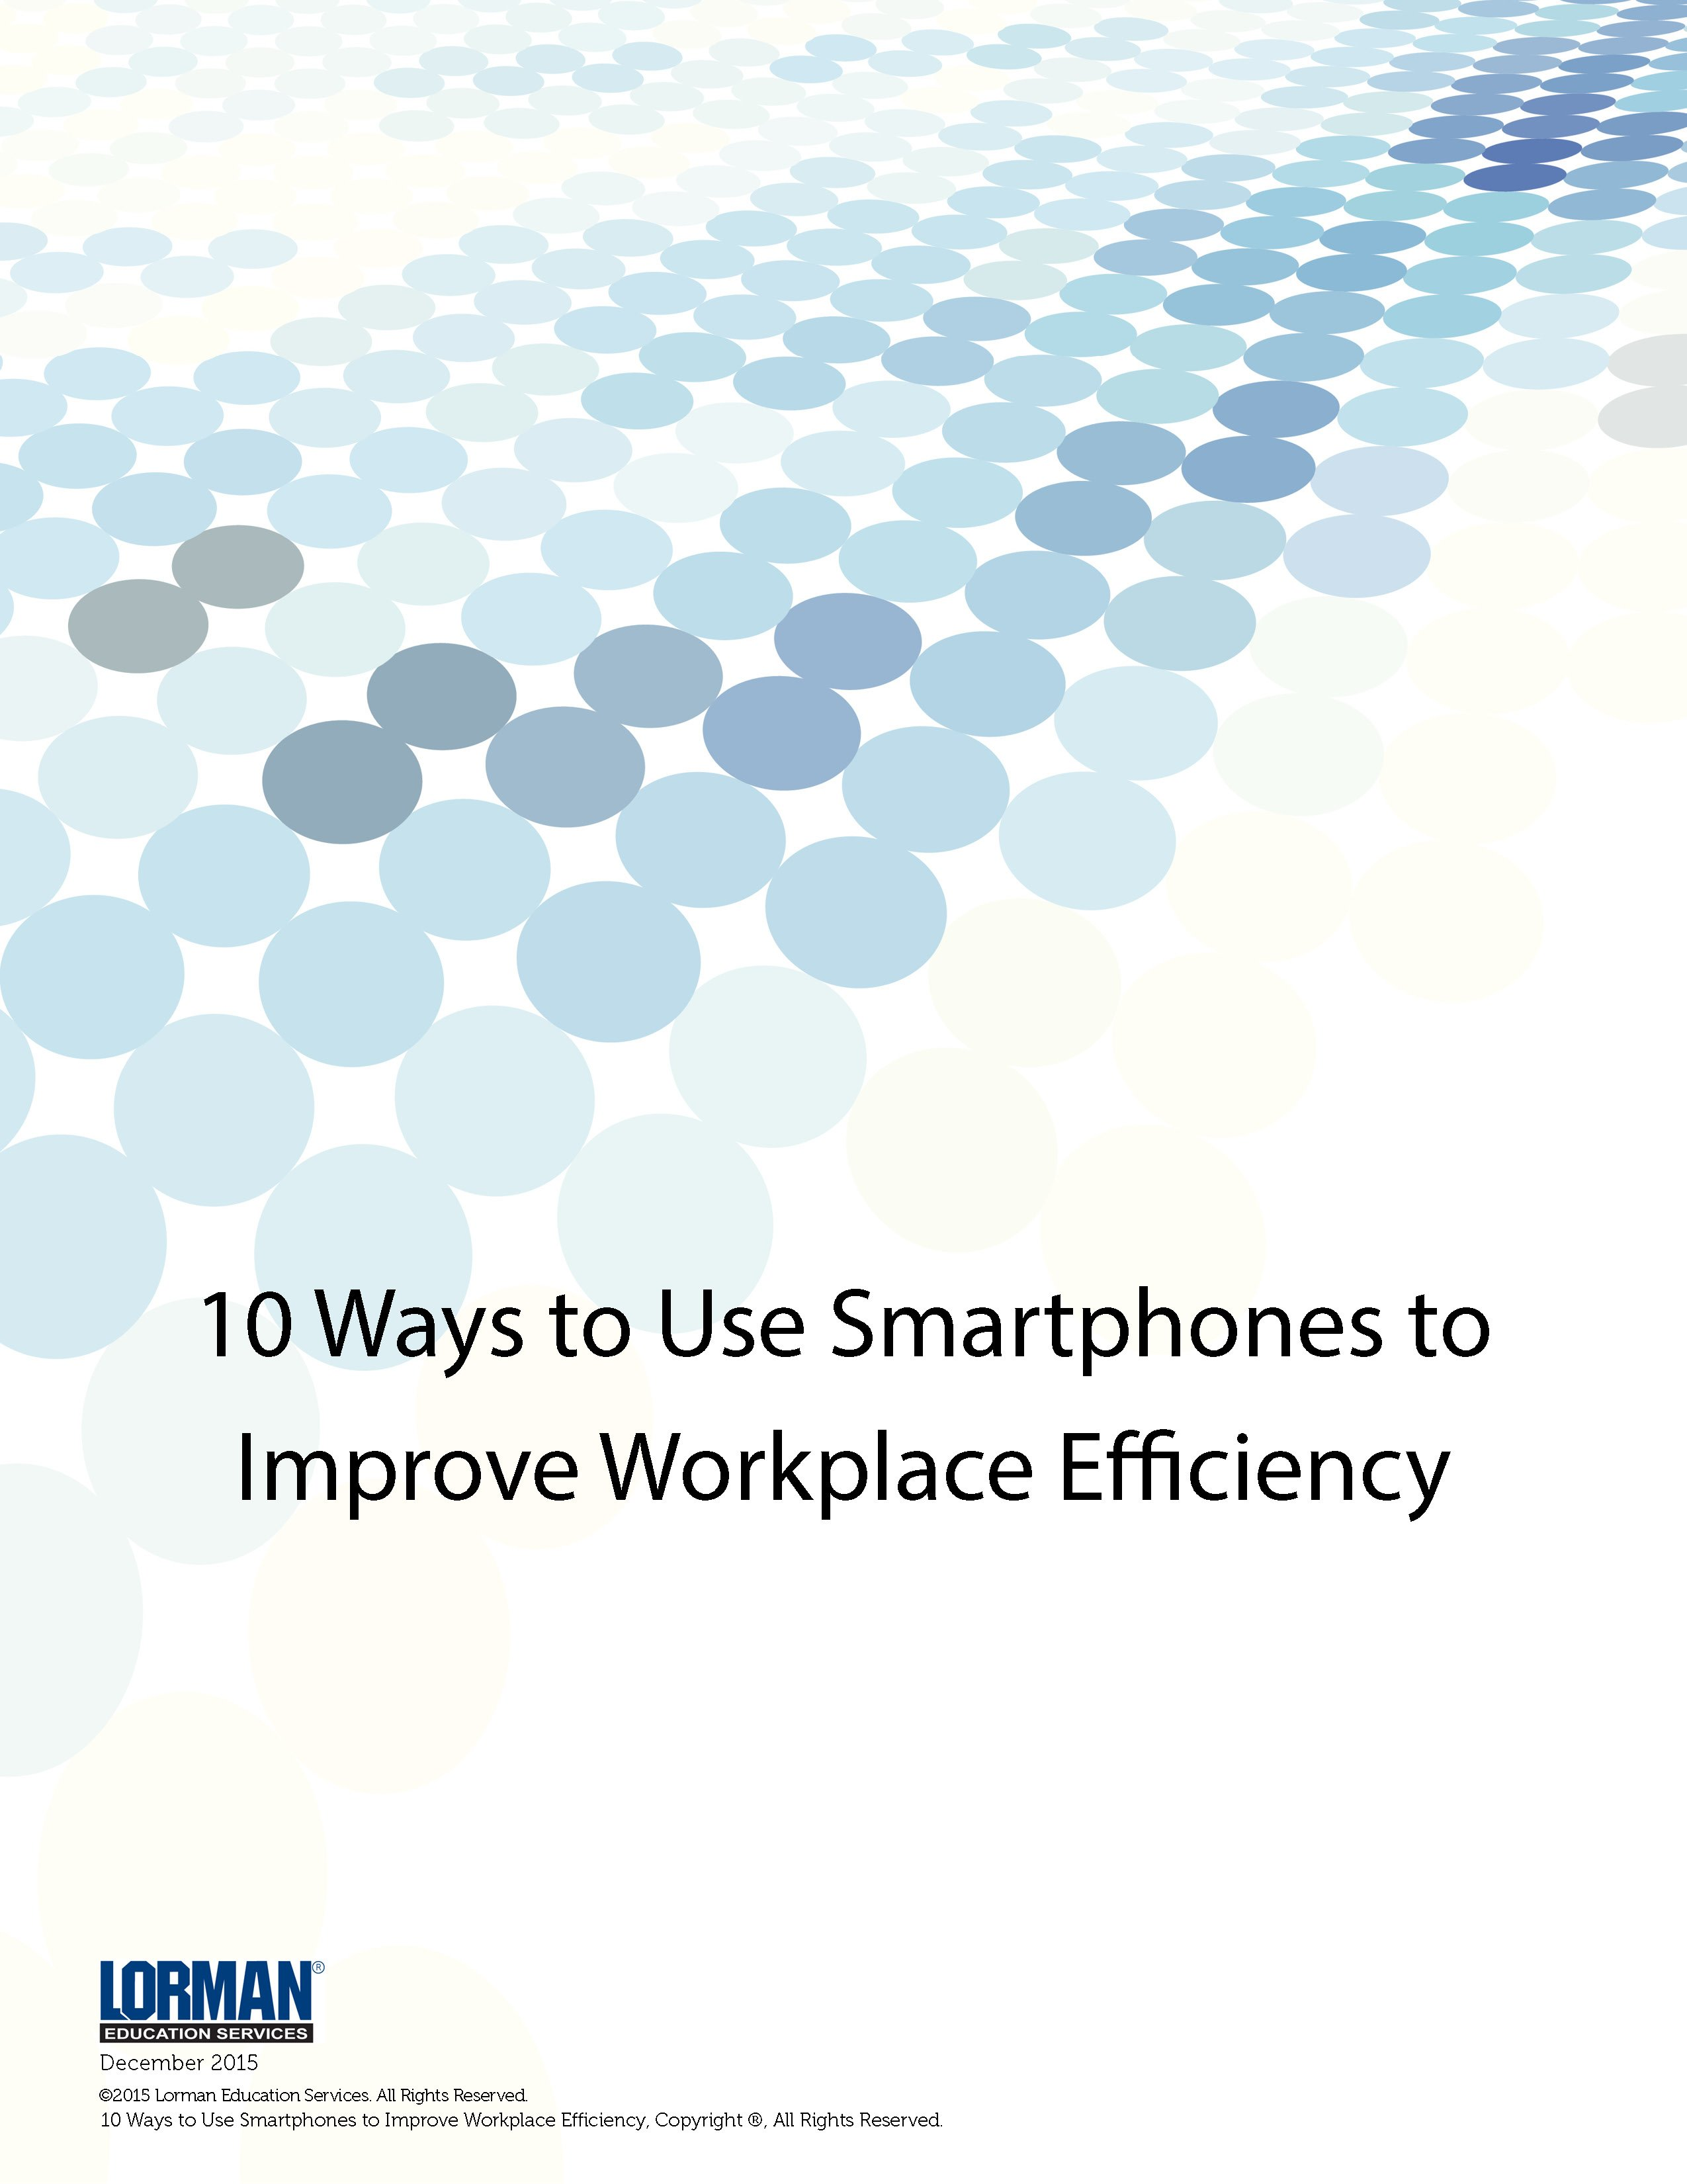 10 Ways to Use Smartphones to Improve Workplace Efficiency